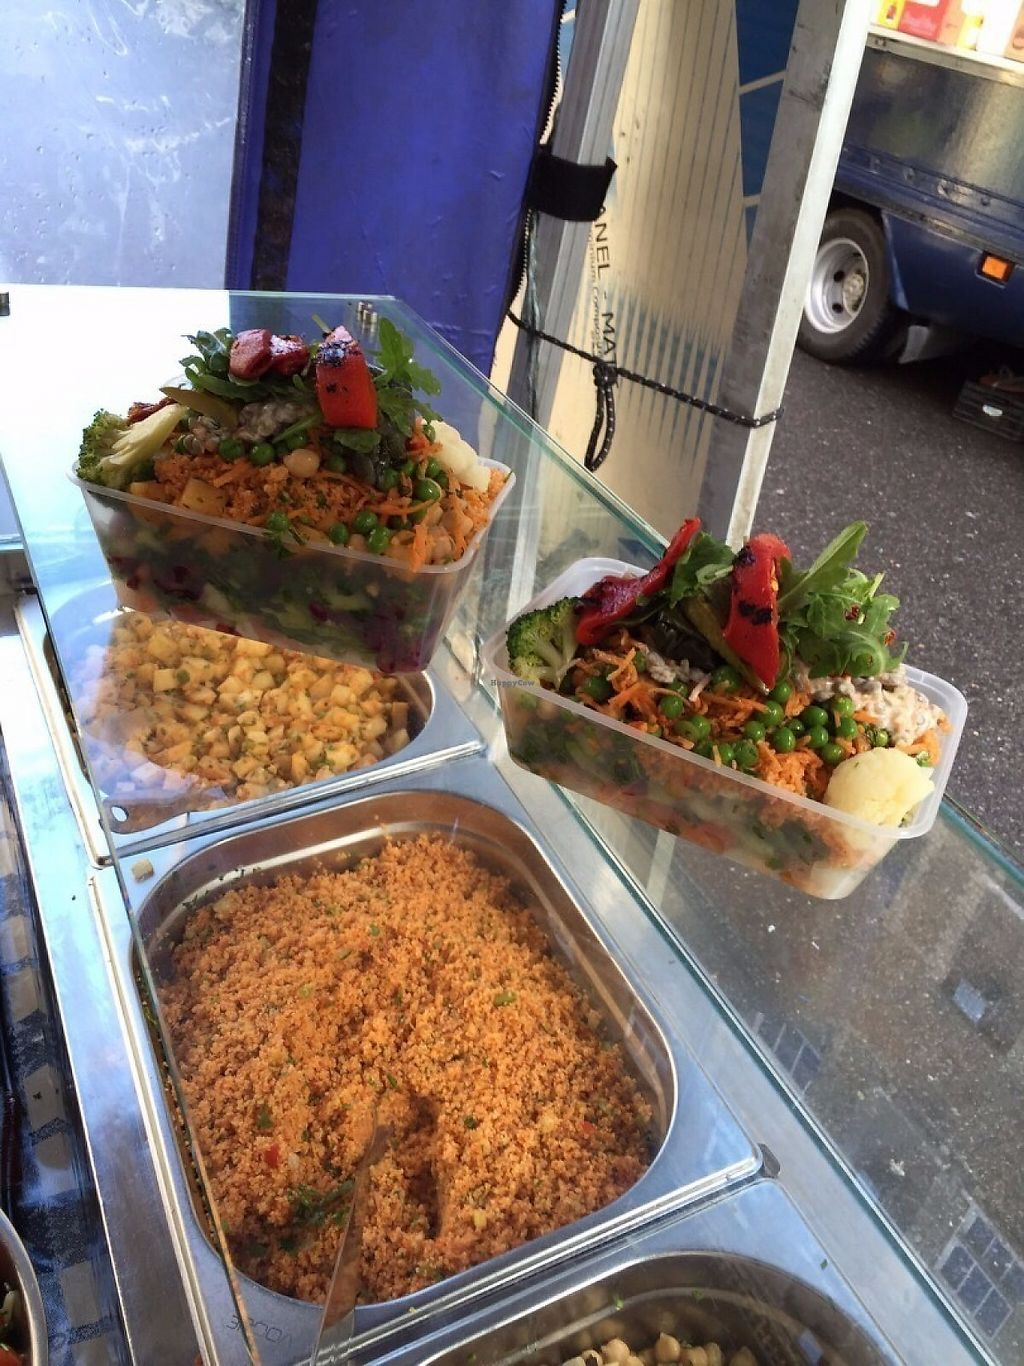 """Photo of Sunny's Olive Tree - Food Stall  by <a href=""""/members/profile/Coldhandshungrytummy"""">Coldhandshungrytummy</a> <br/>The large and small box from Sunny Olive Tree <br/> May 6, 2017  - <a href='/contact/abuse/image/91637/256127'>Report</a>"""